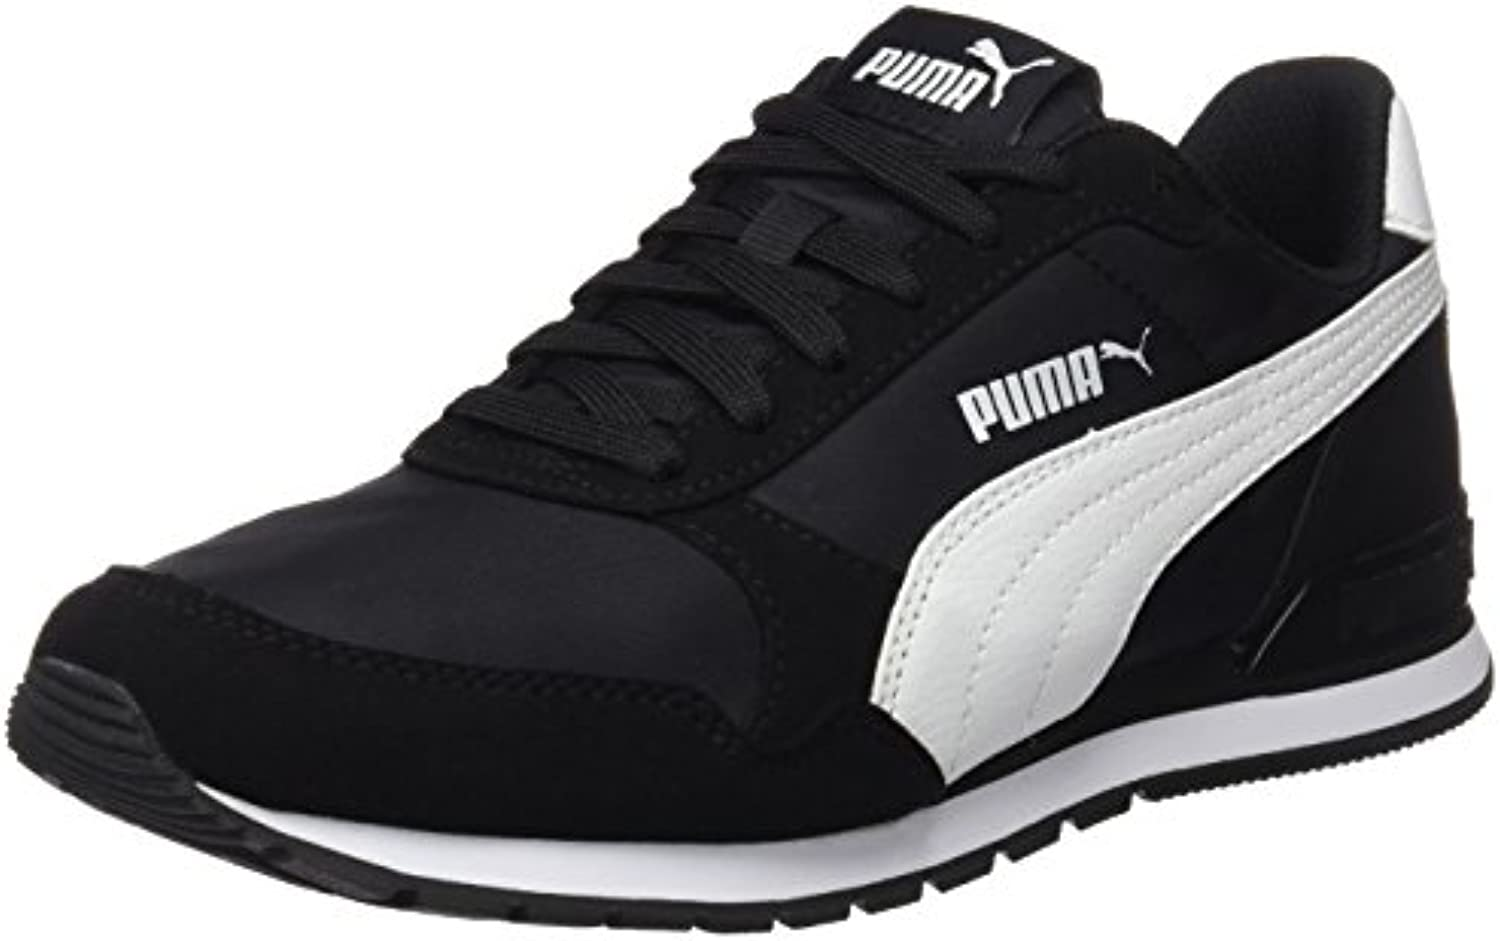 Puma St Runner V2 NL, Zapatillas de Cross Unisex Adulto -